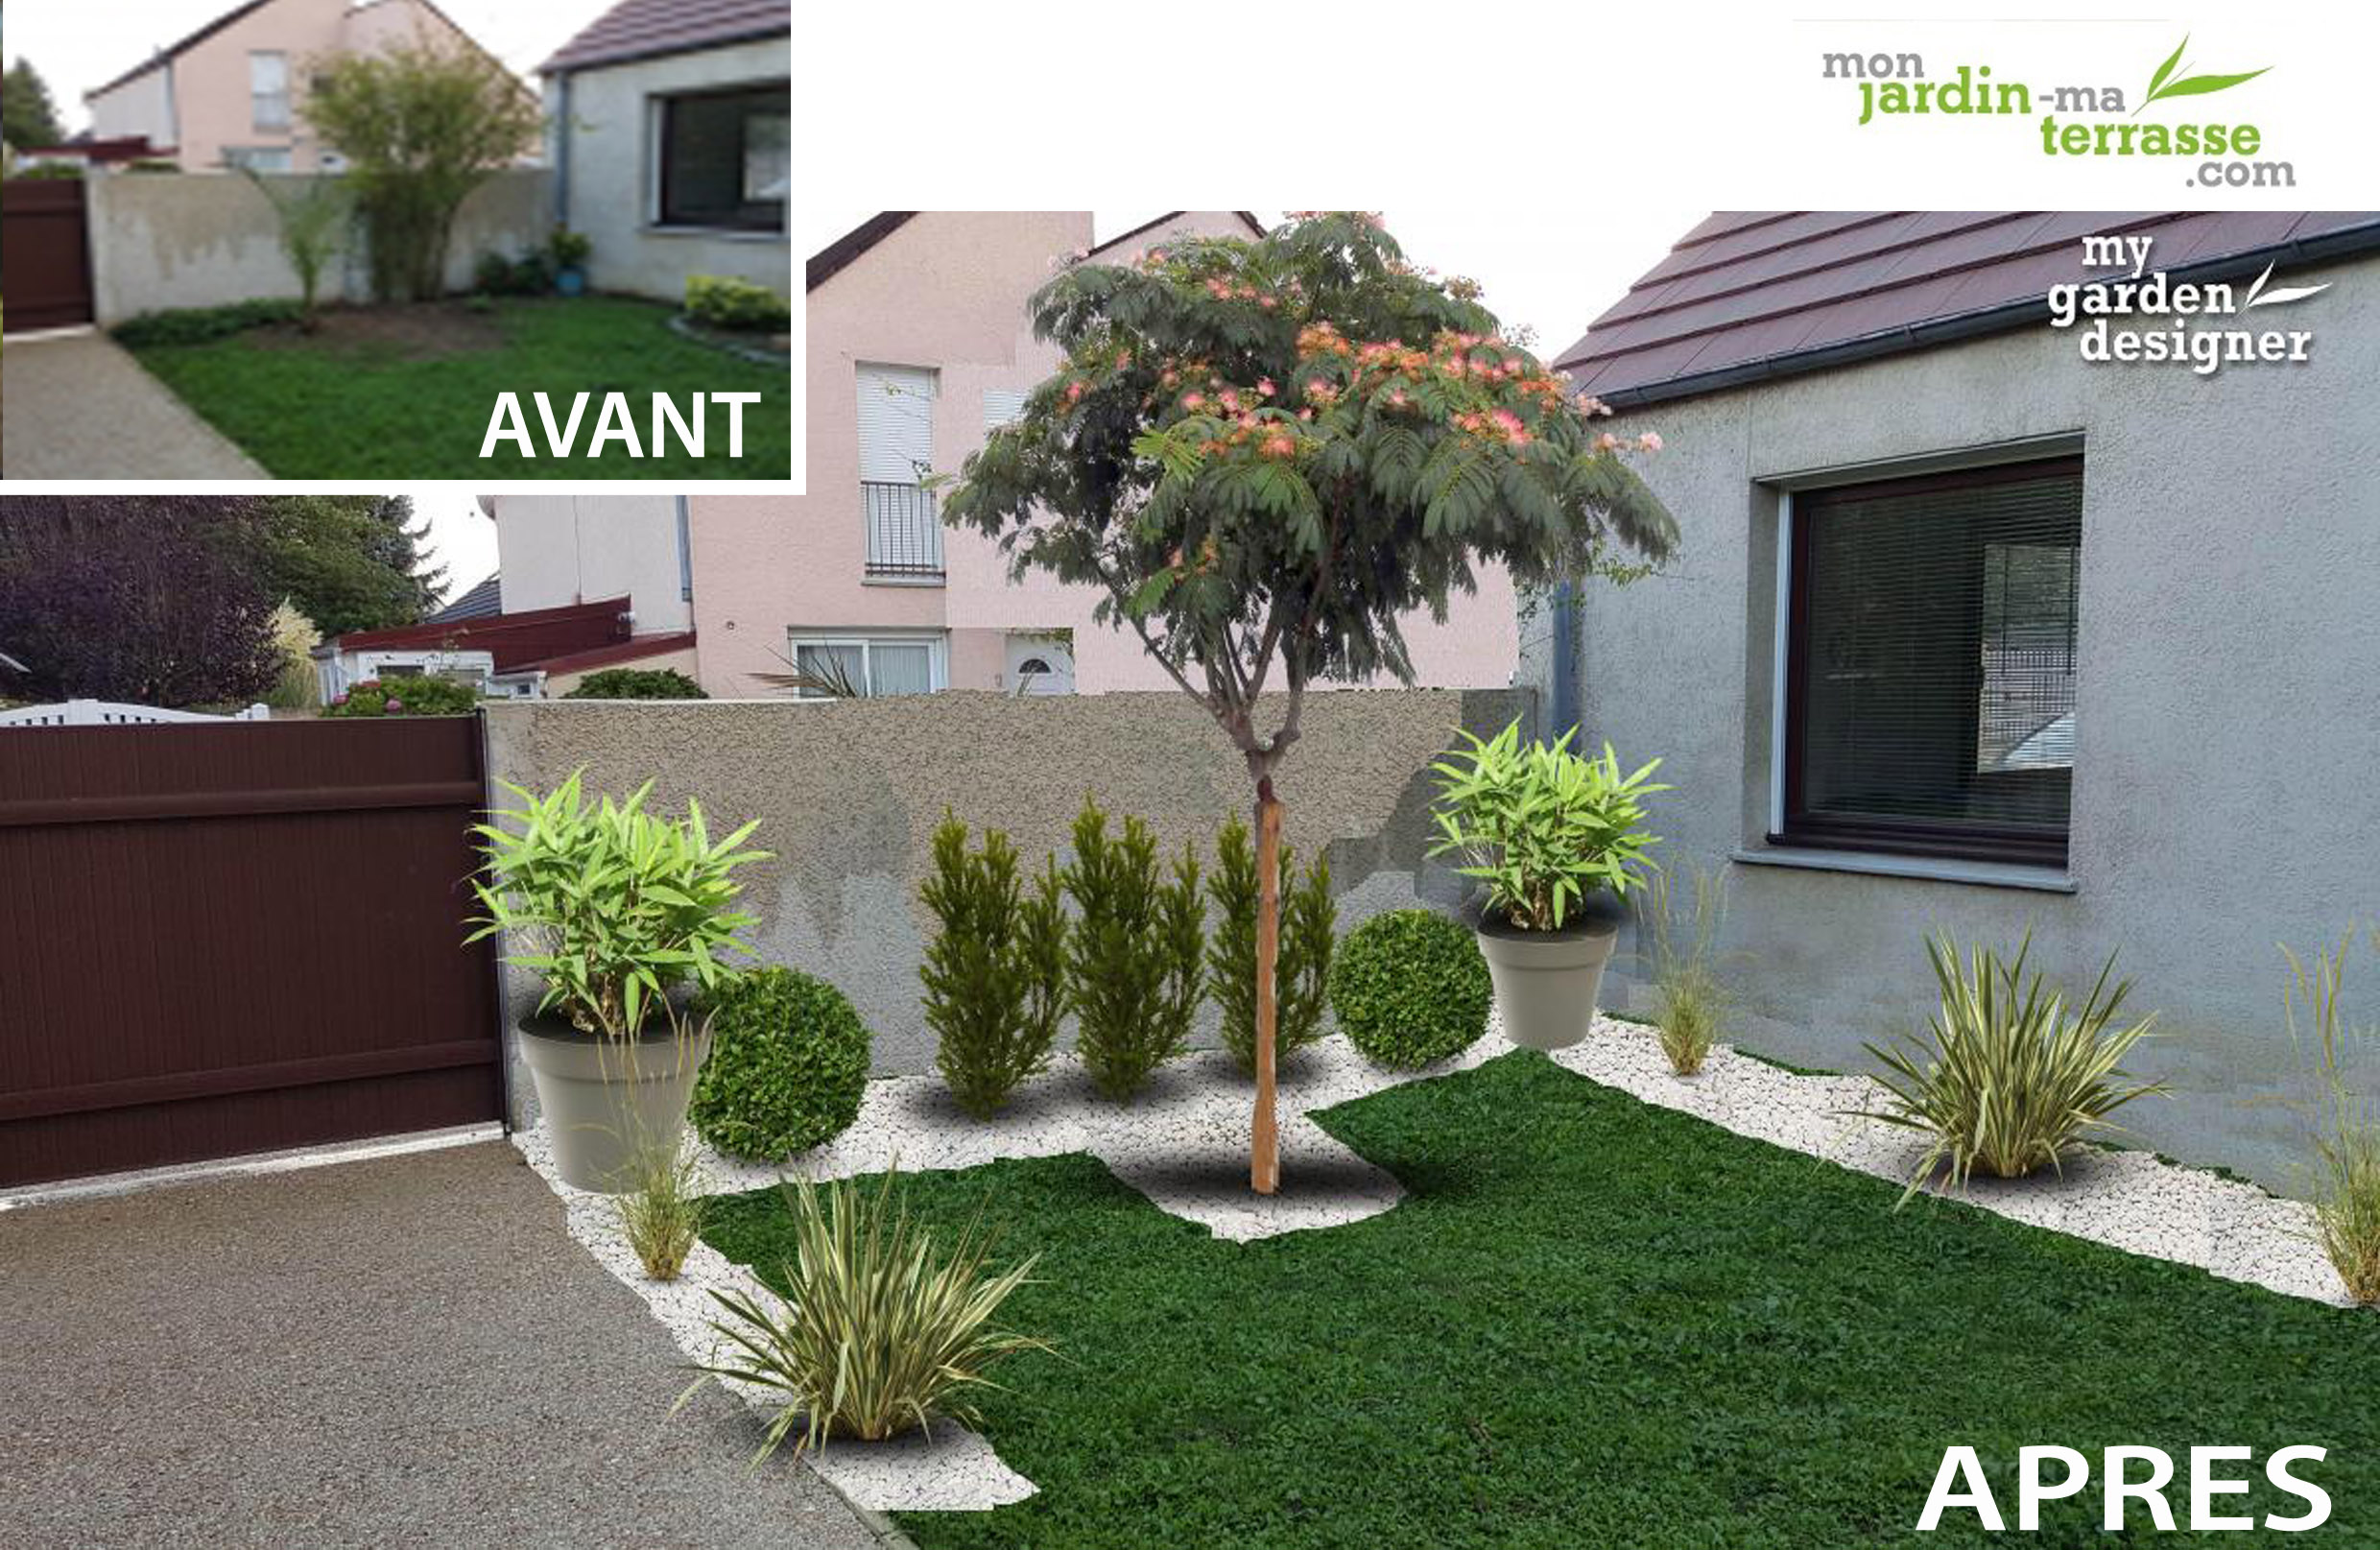 Am nager un petit jardin de 30m monjardin for Jardin exterieur amenagement